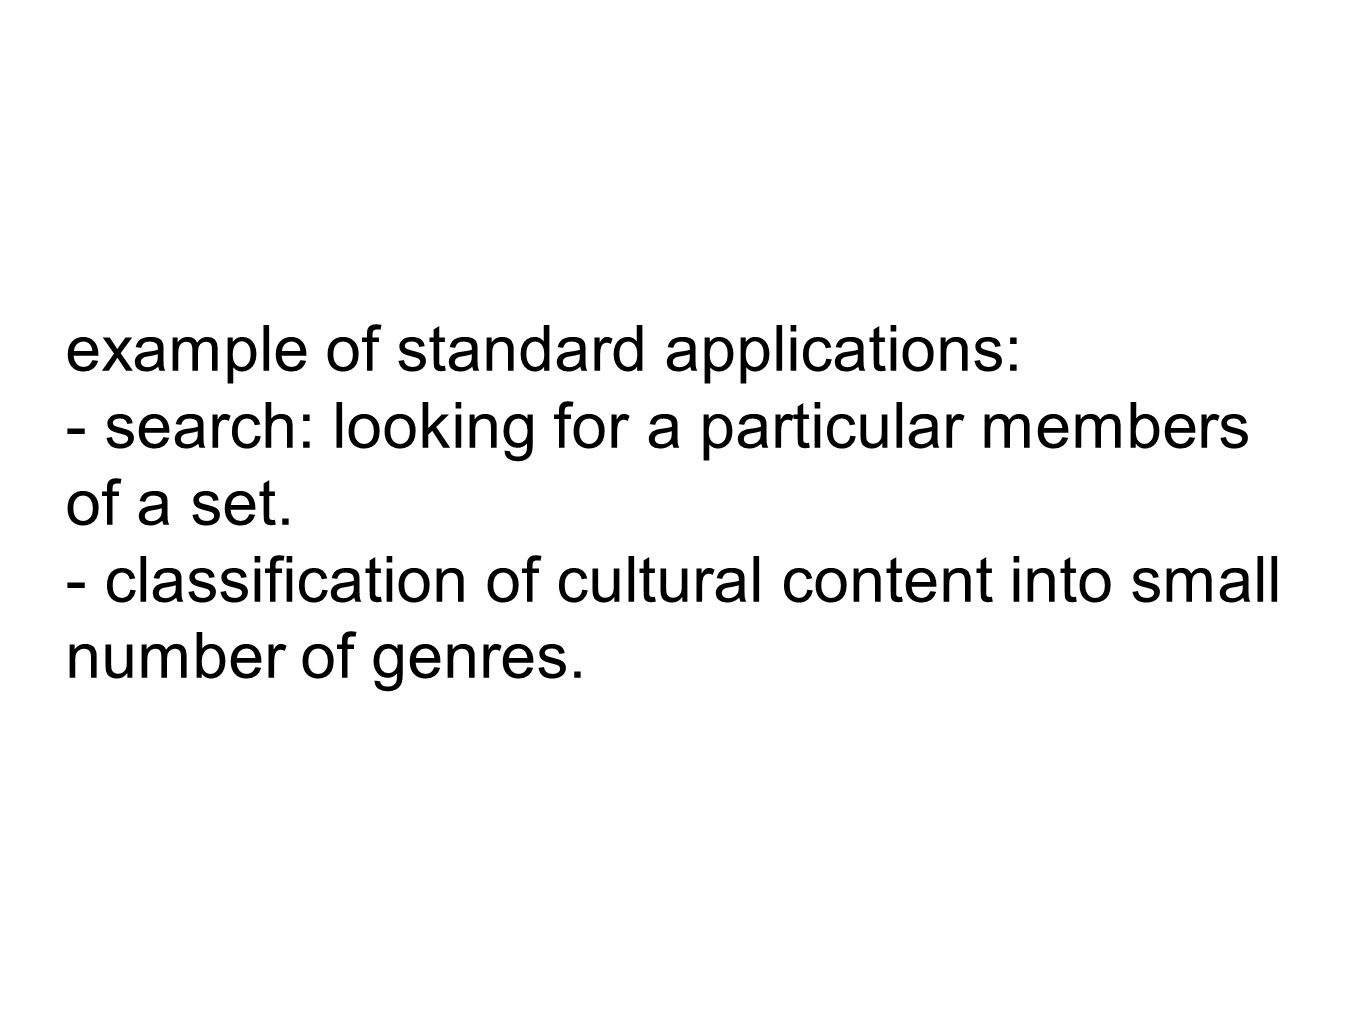 example of standard applications: - search: looking for a particular members of a set.